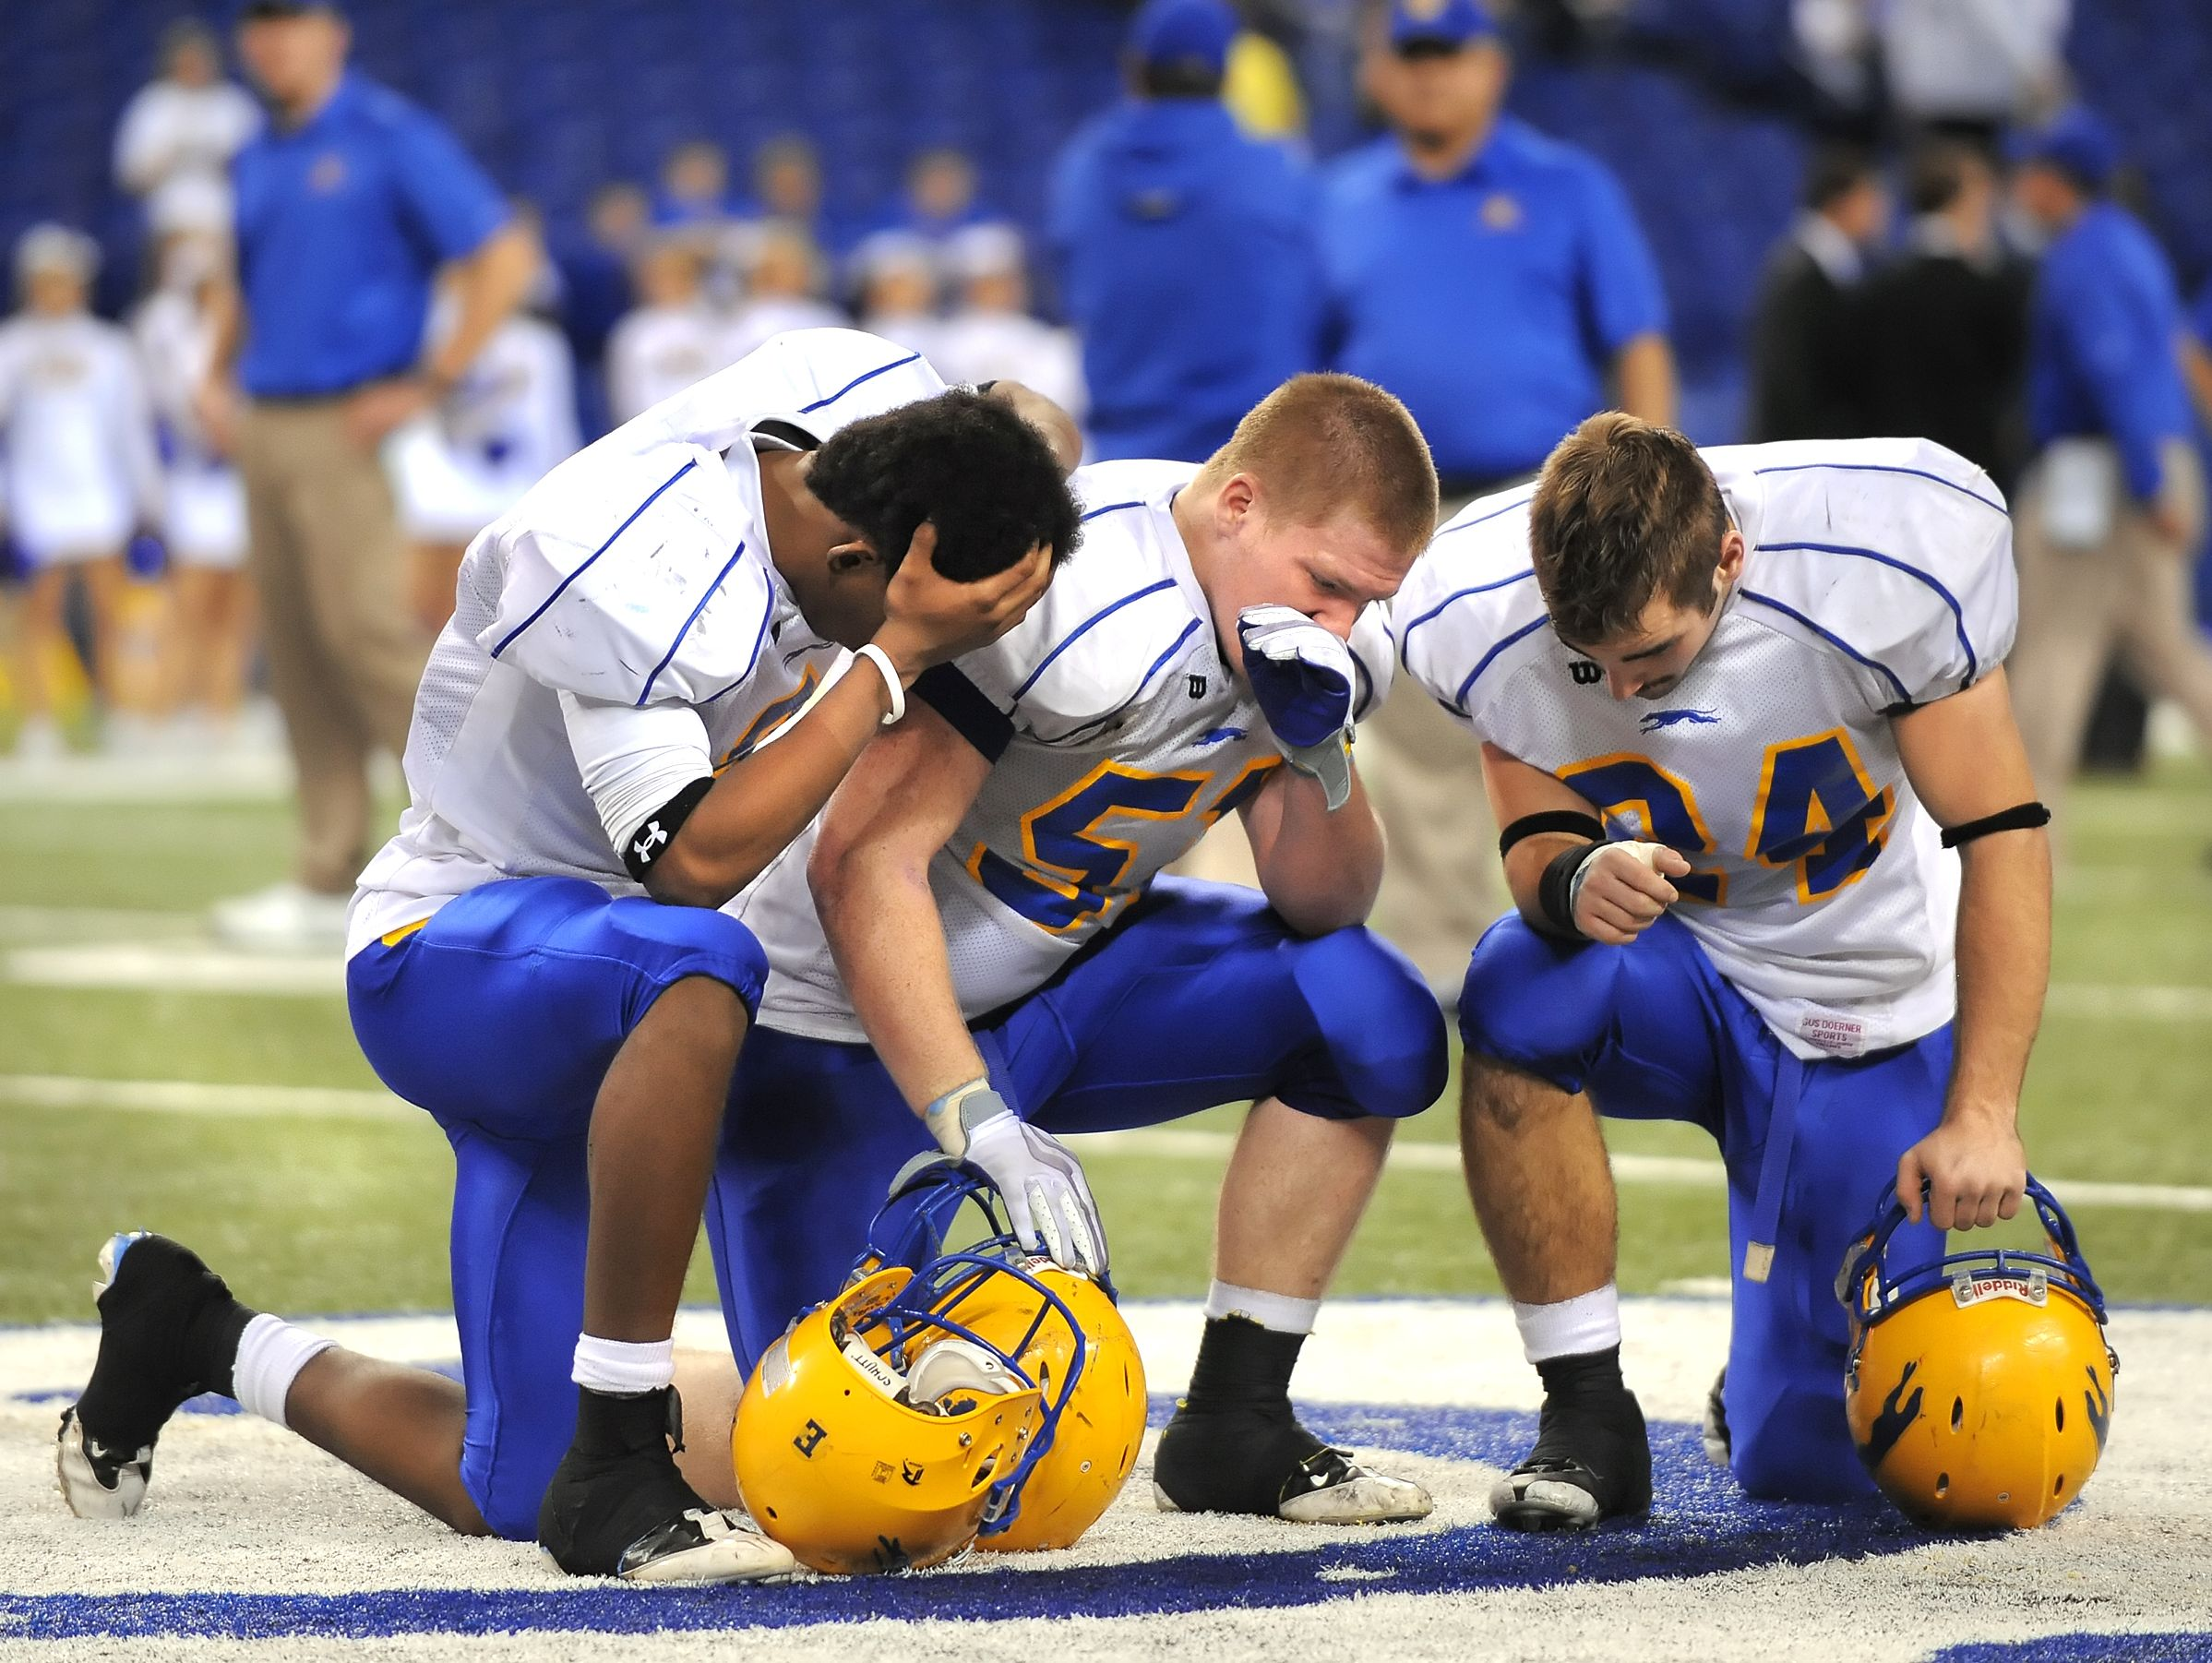 FILE – Carmel players (from left) Chase Varndell, John Wood and Ronnie Fowlkes feel the double overtime loss to Warren Central in the 5A state finals at Lucas Oil Stadium on Nov. 28, 2009.